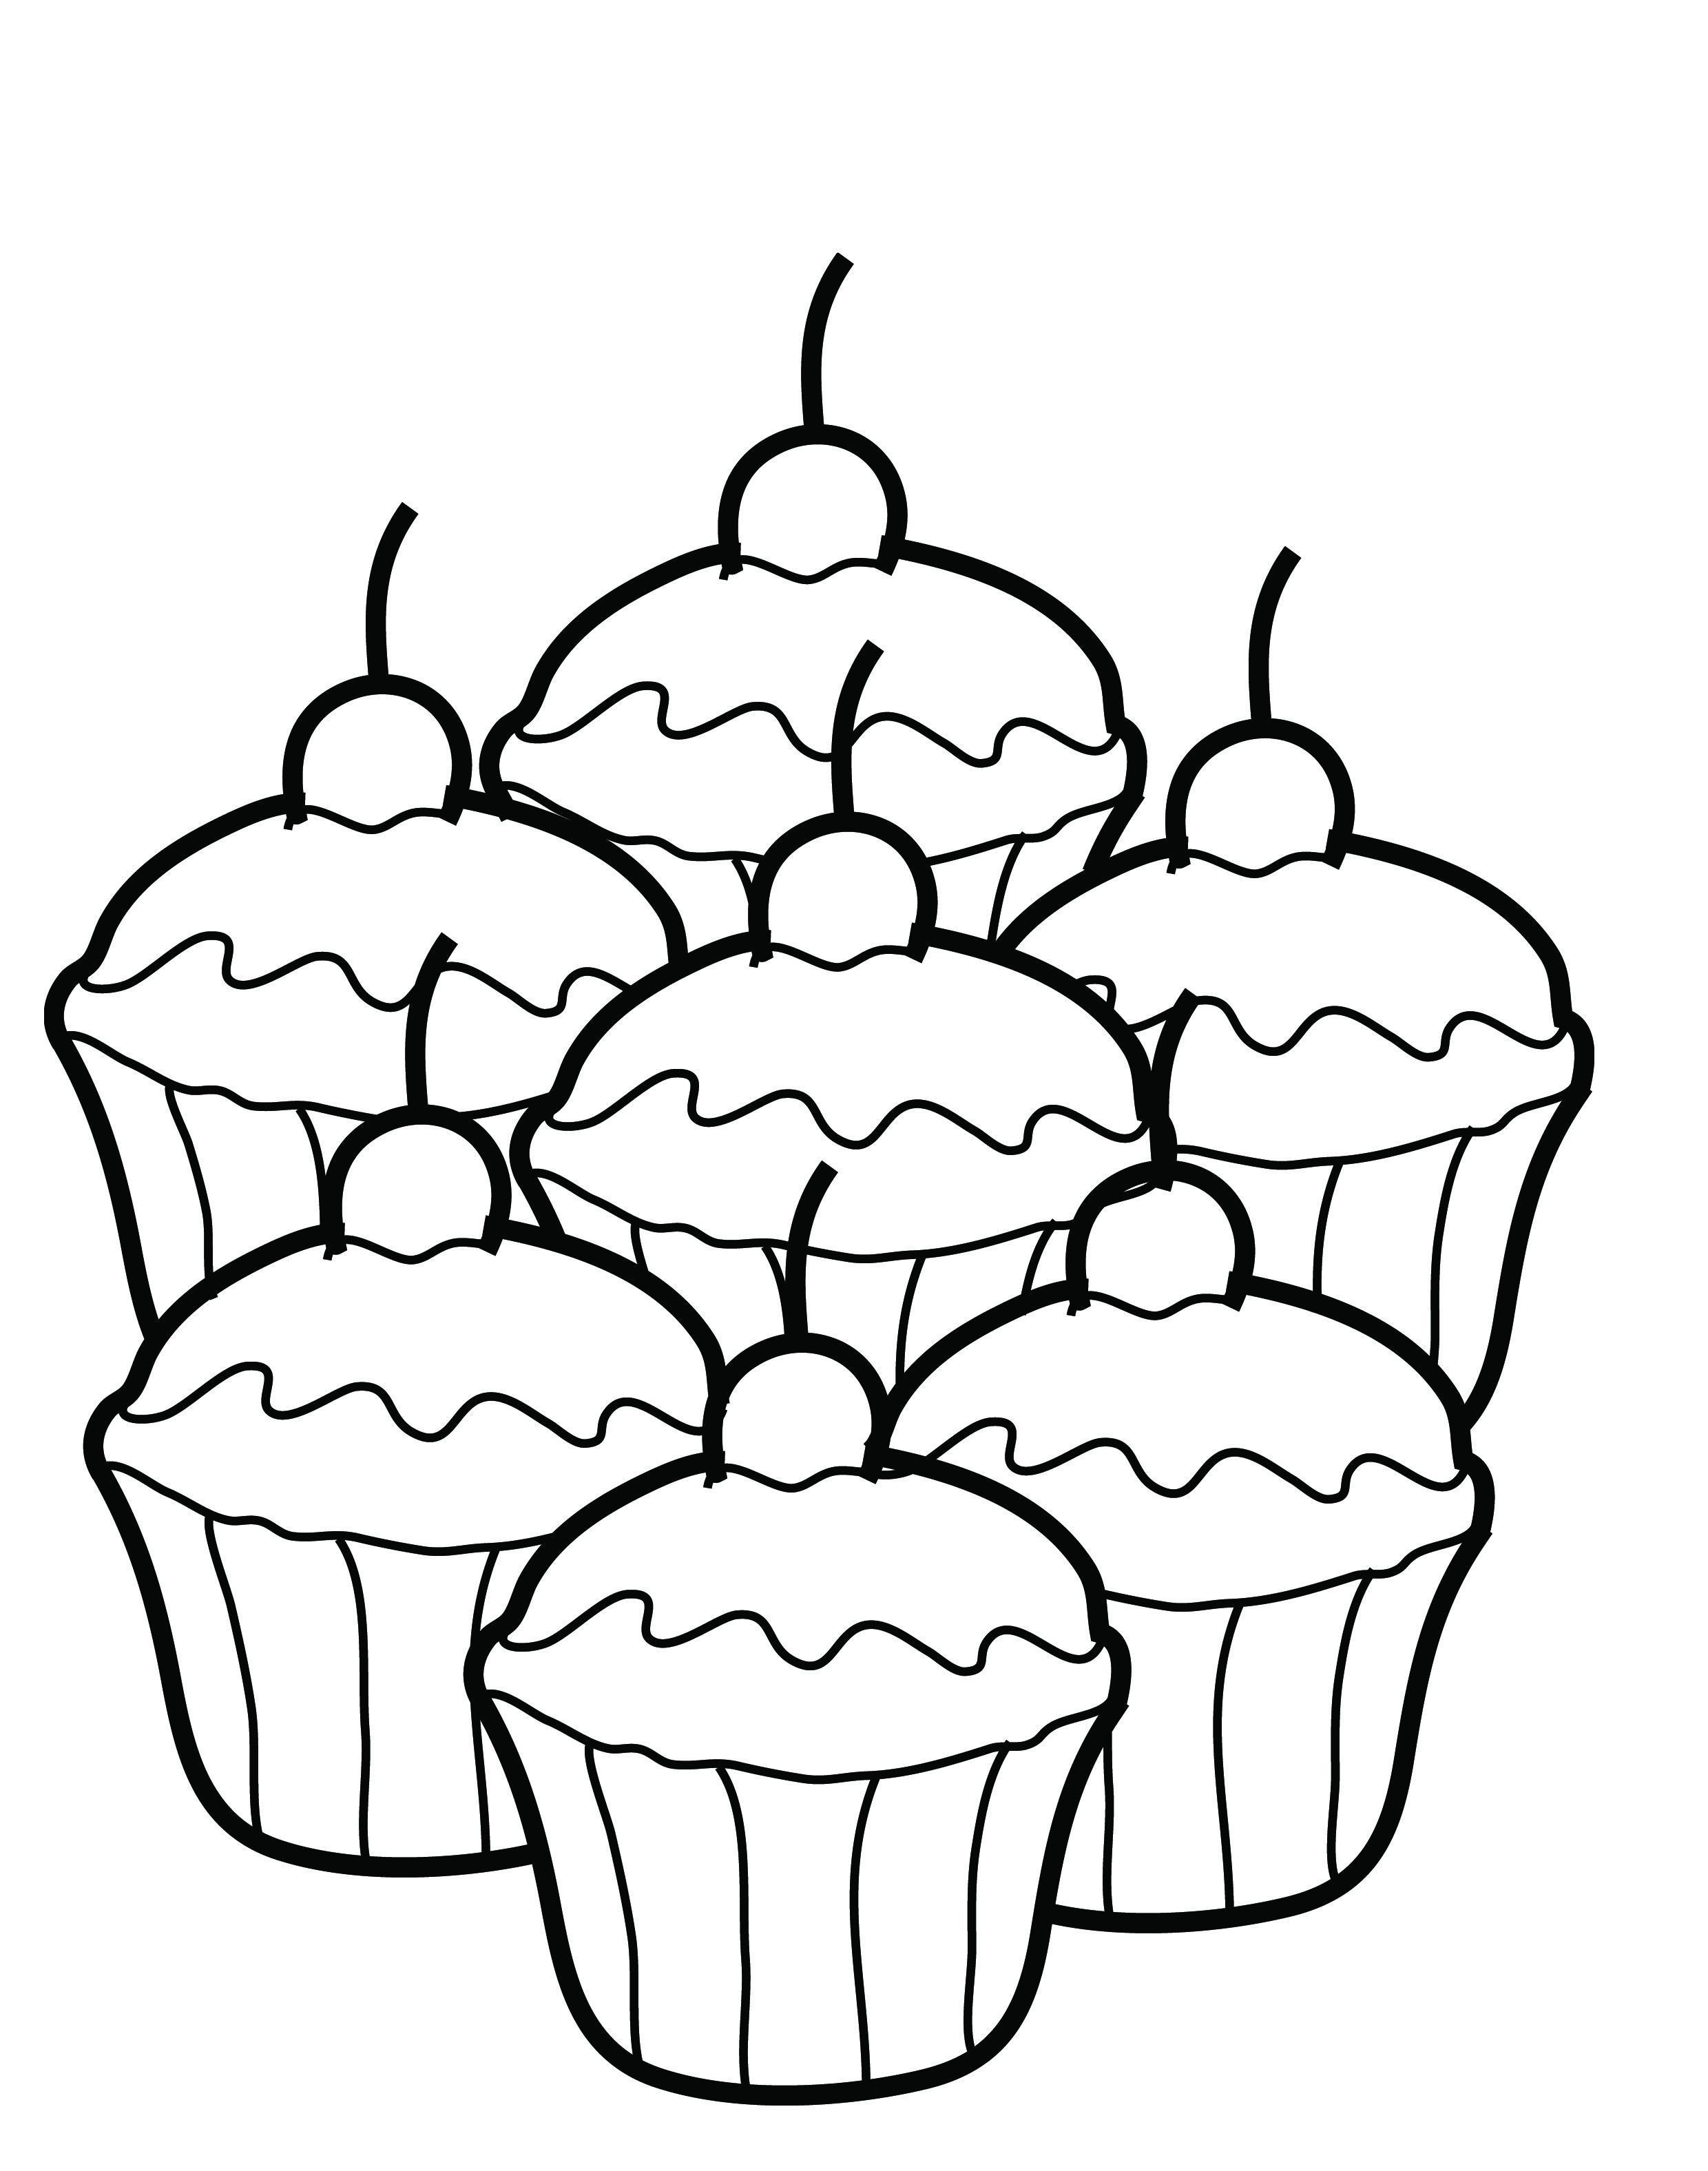 cupcake coloring pages for kids - Colouring In Pictures For Children